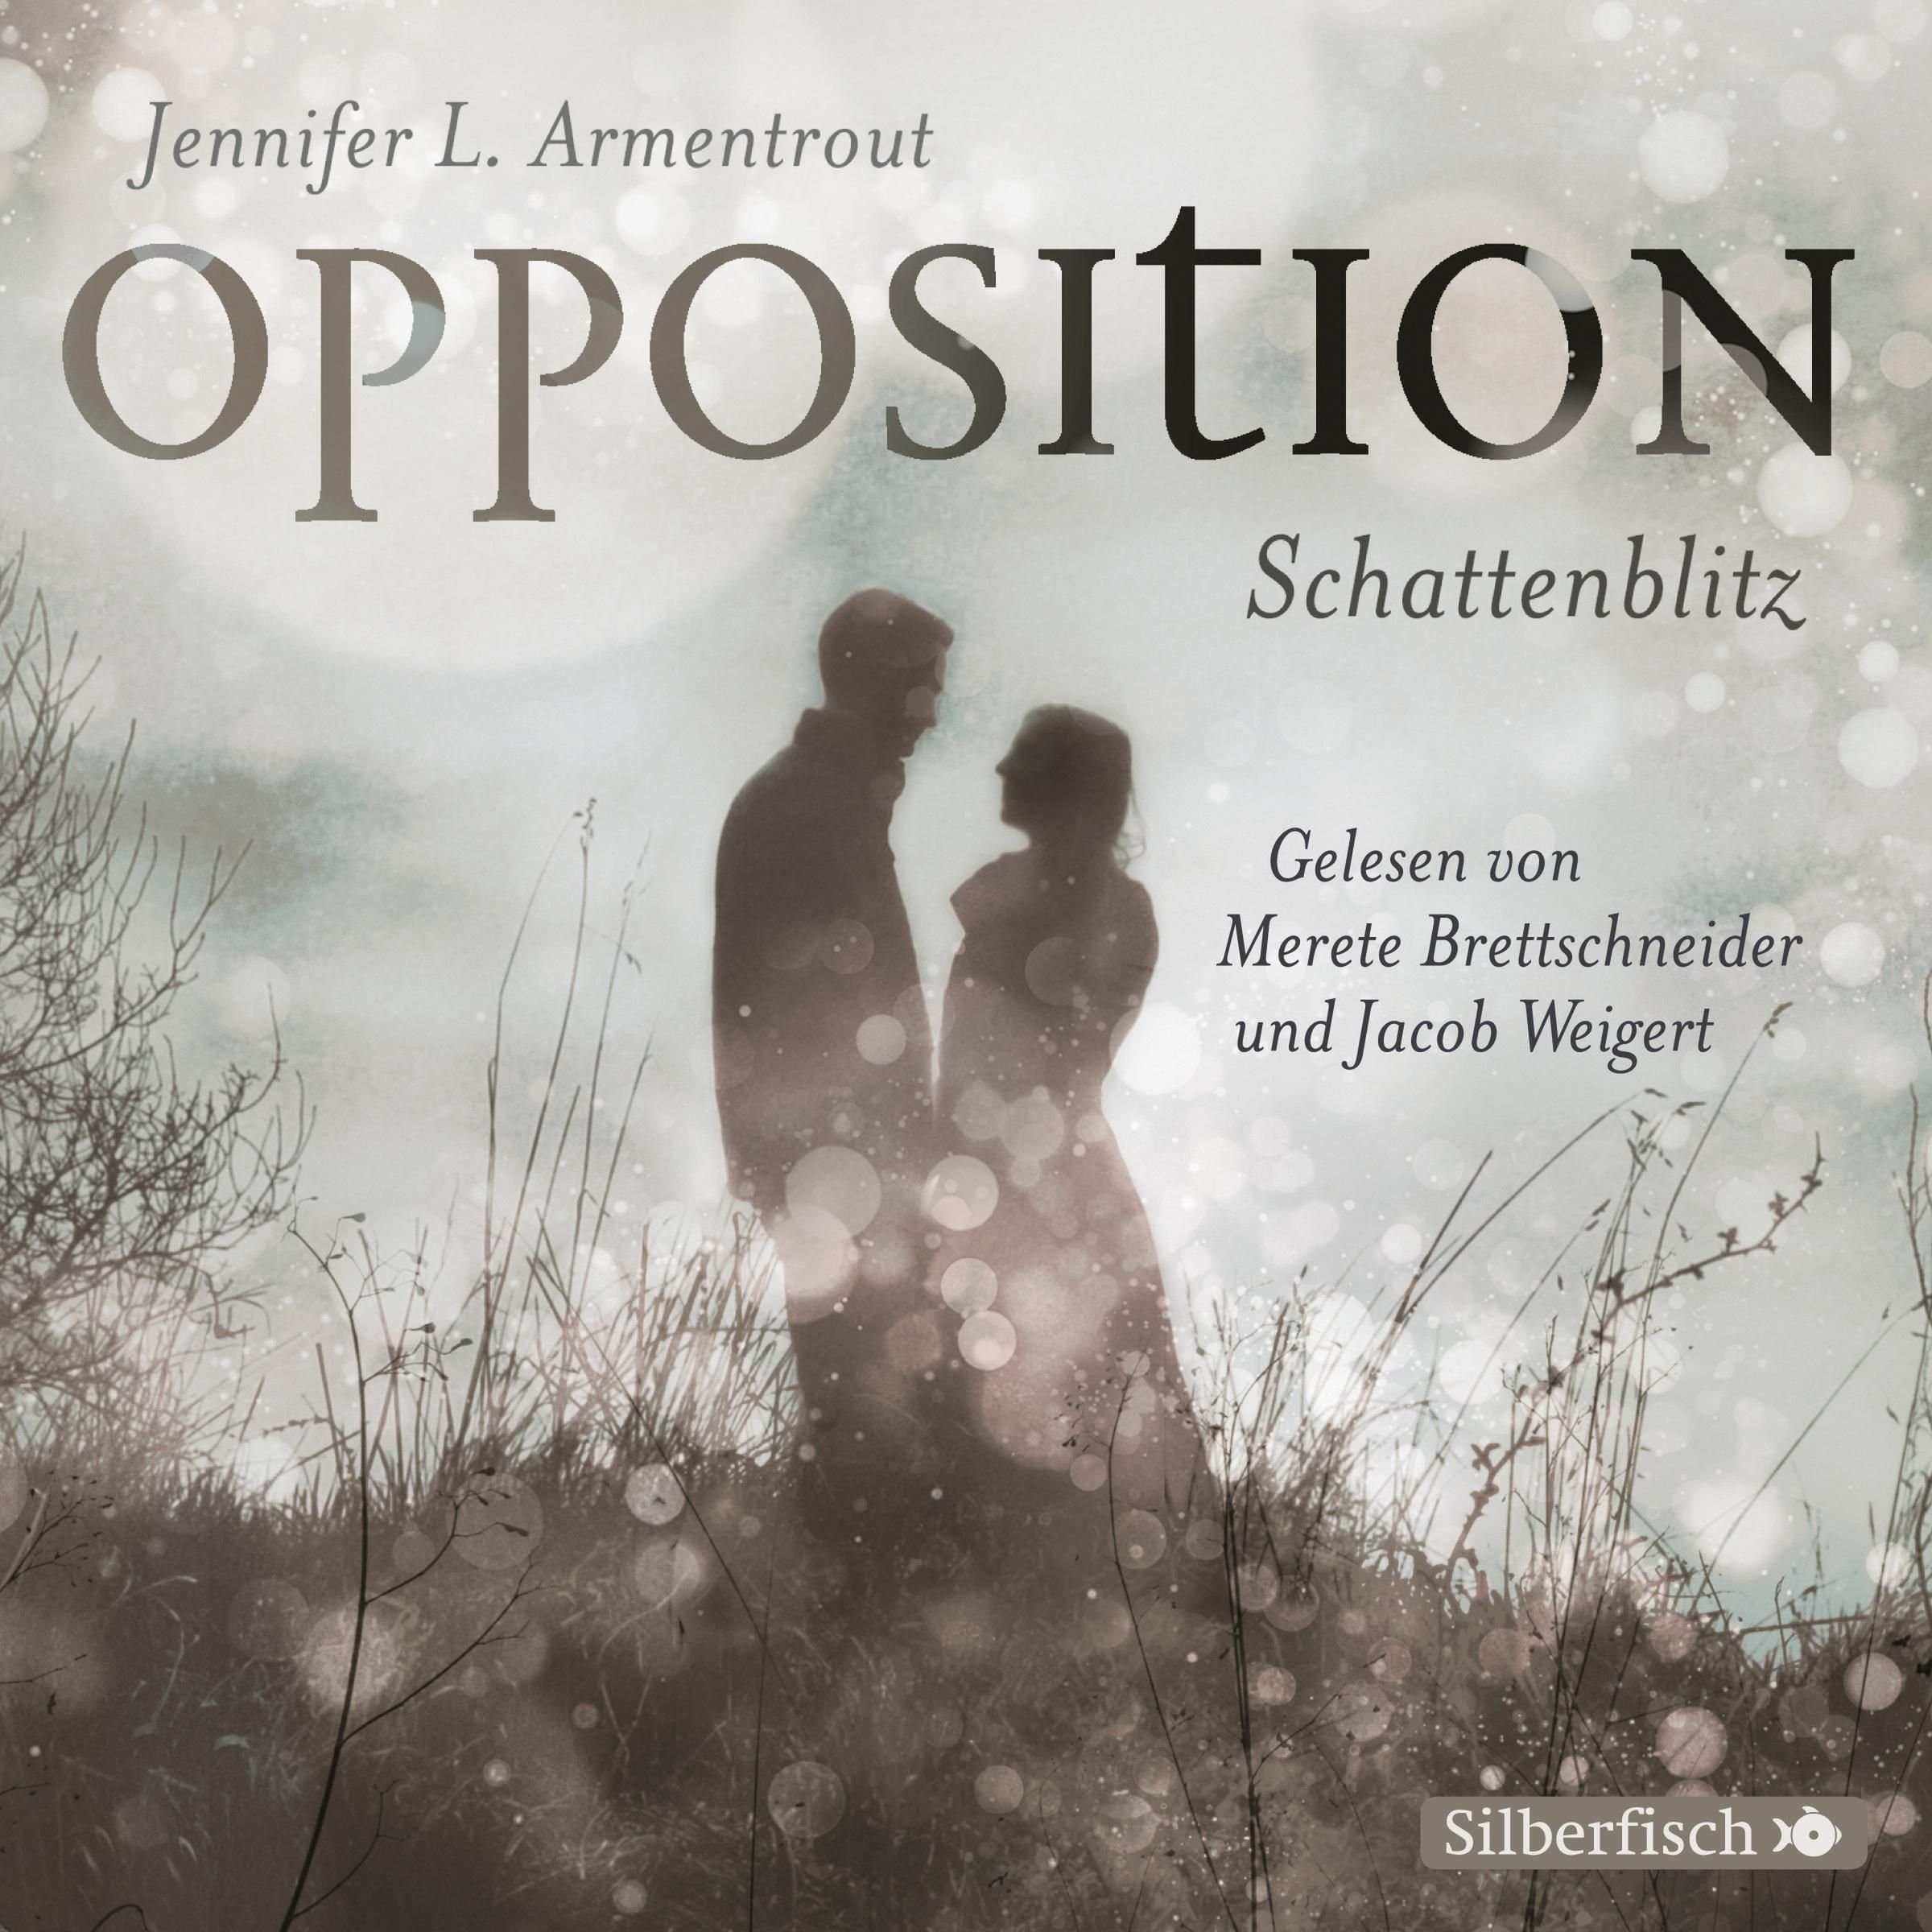 Opposition. Schattenblitz: 6 CDs (Obsidian, Band 5)